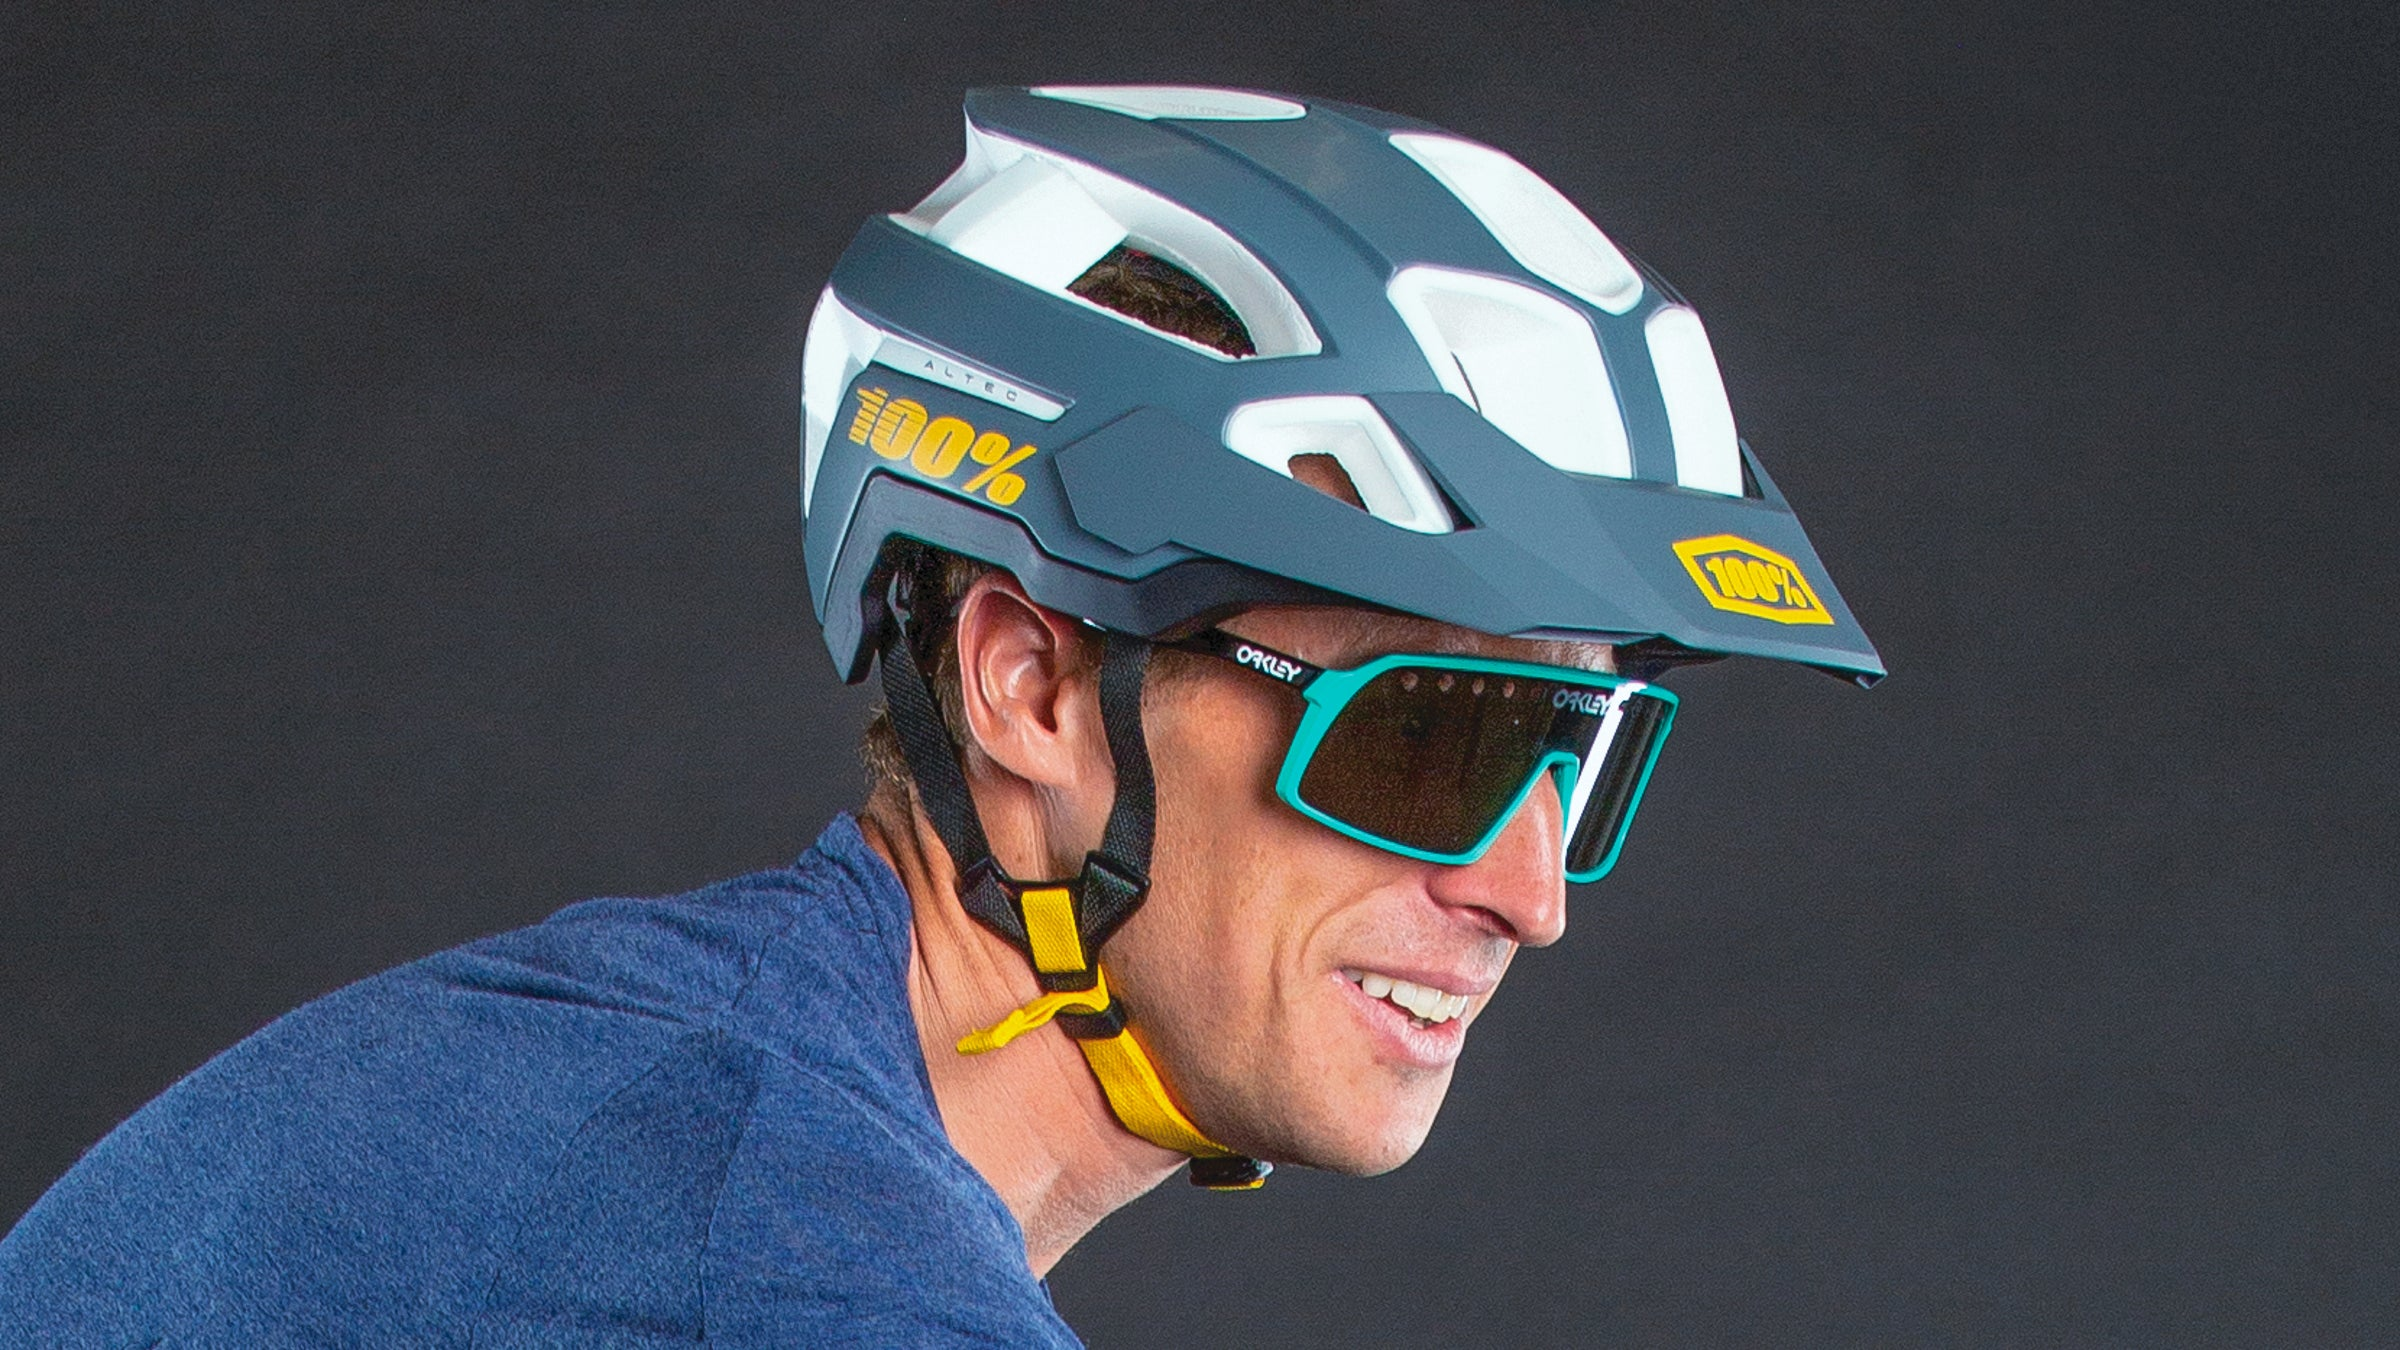 Close-up of man wearing cycling helmet and glasses